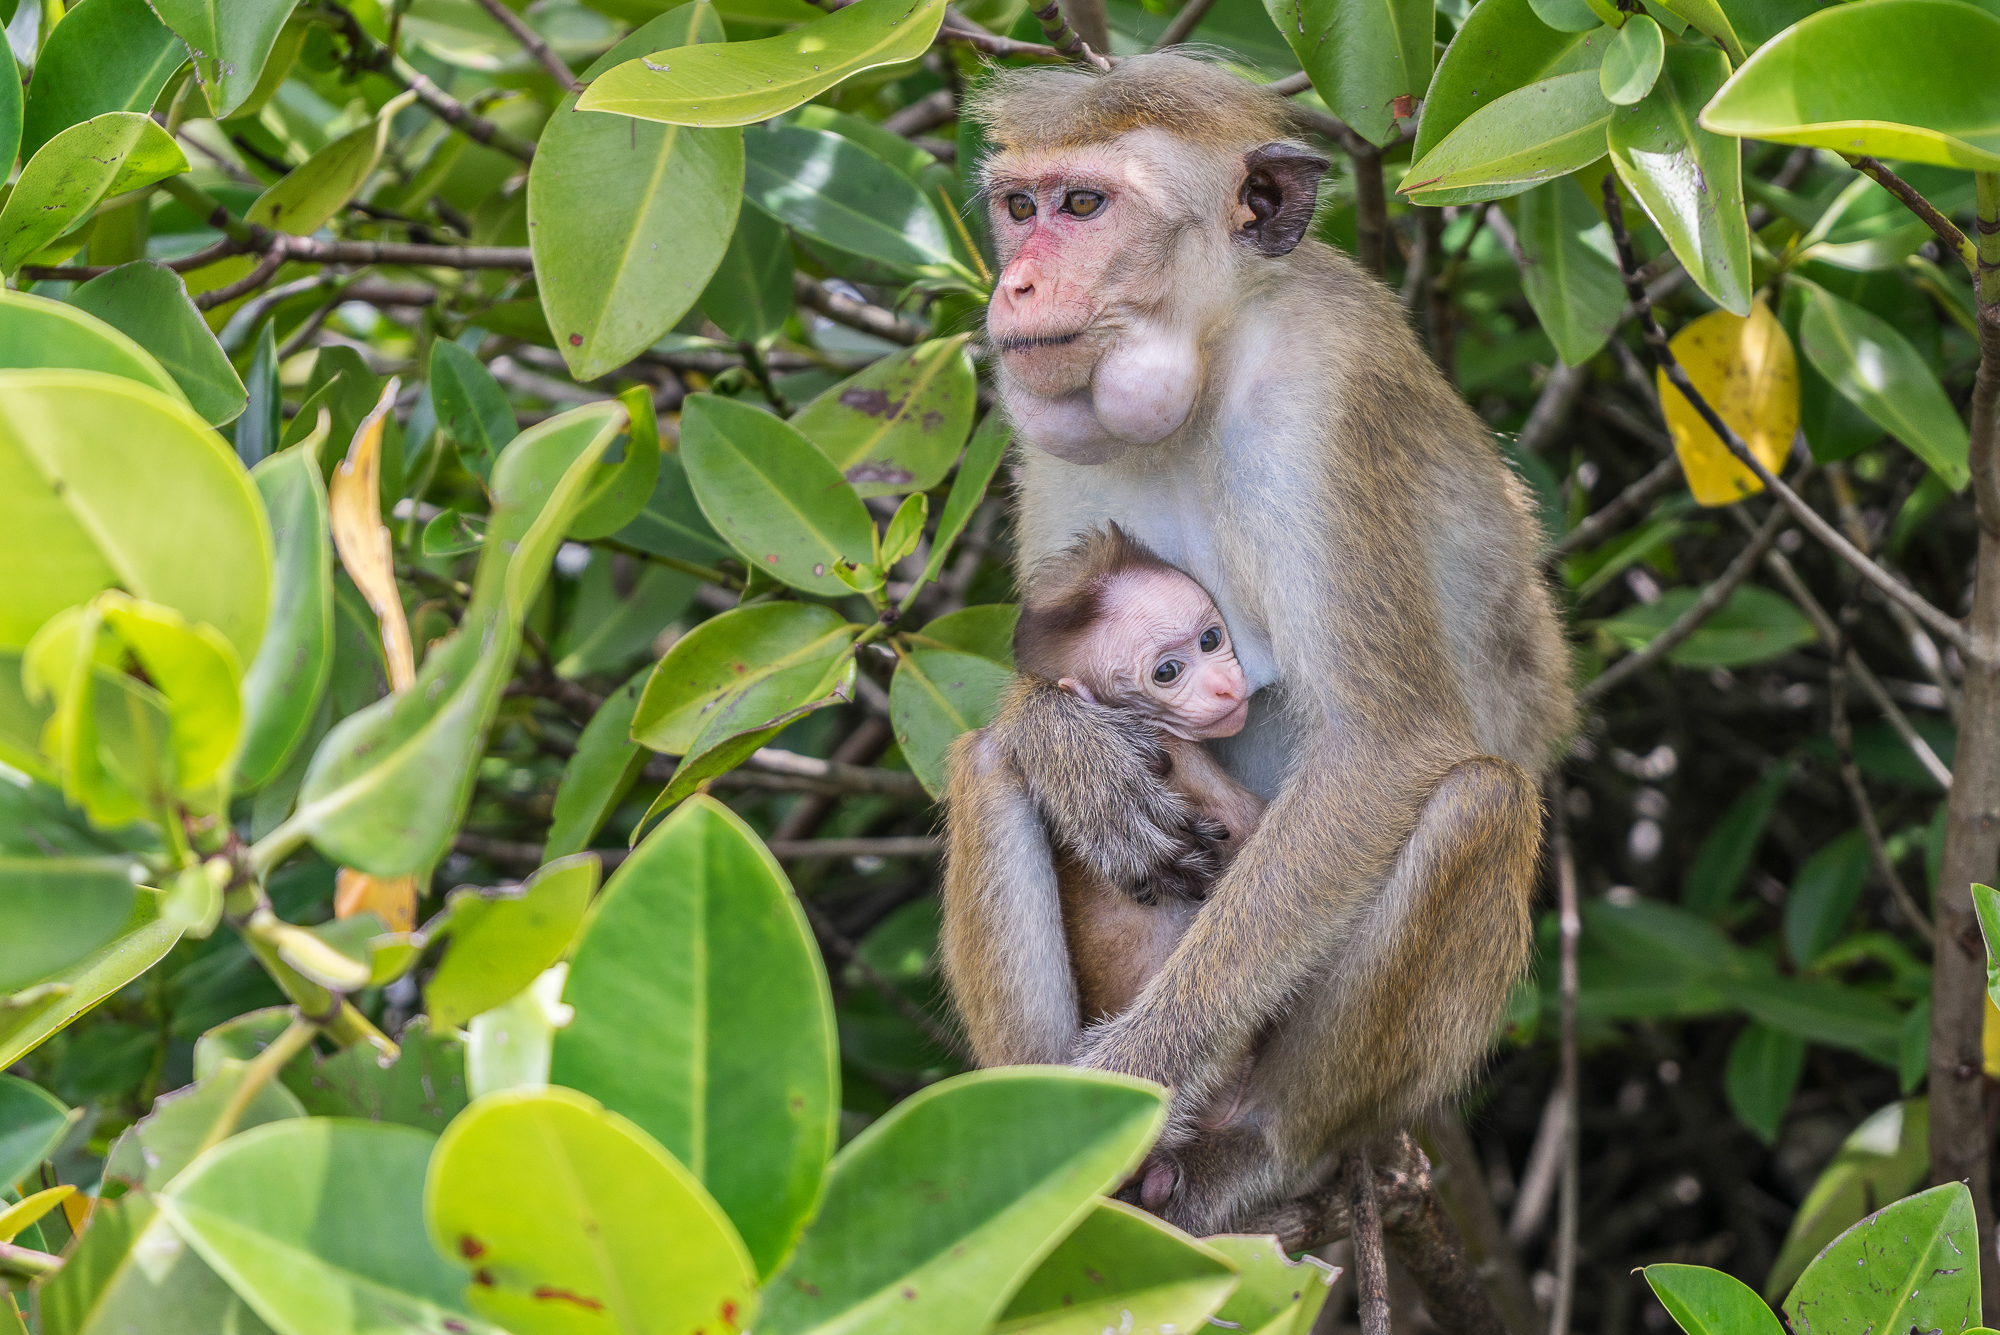 Breastfeeding monkey